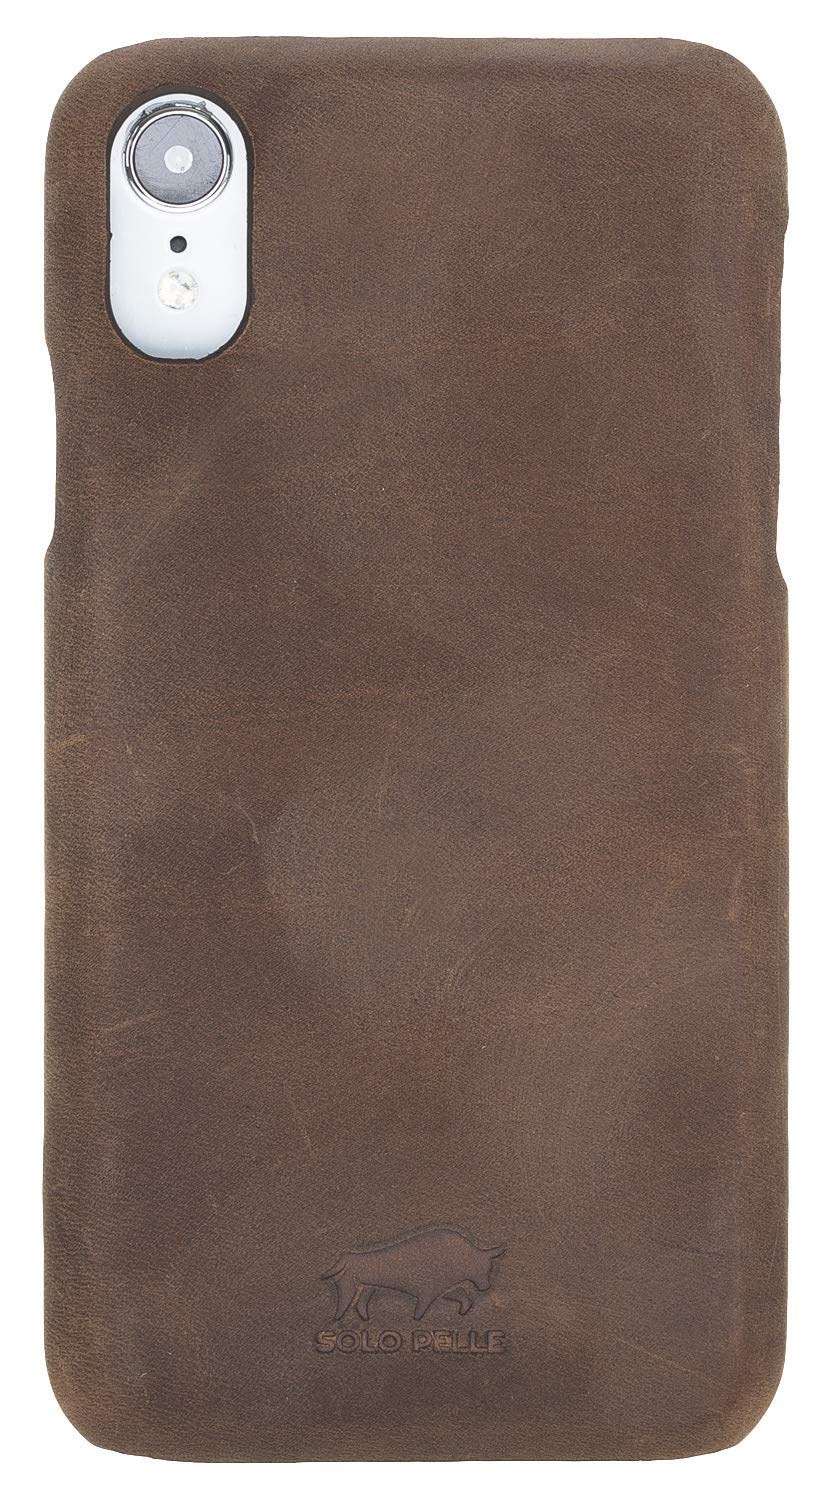 iPhone XR Leder Hülle Tasche Lederhülle Ledertasche Backcover Ultra Slim in Vintage Braun